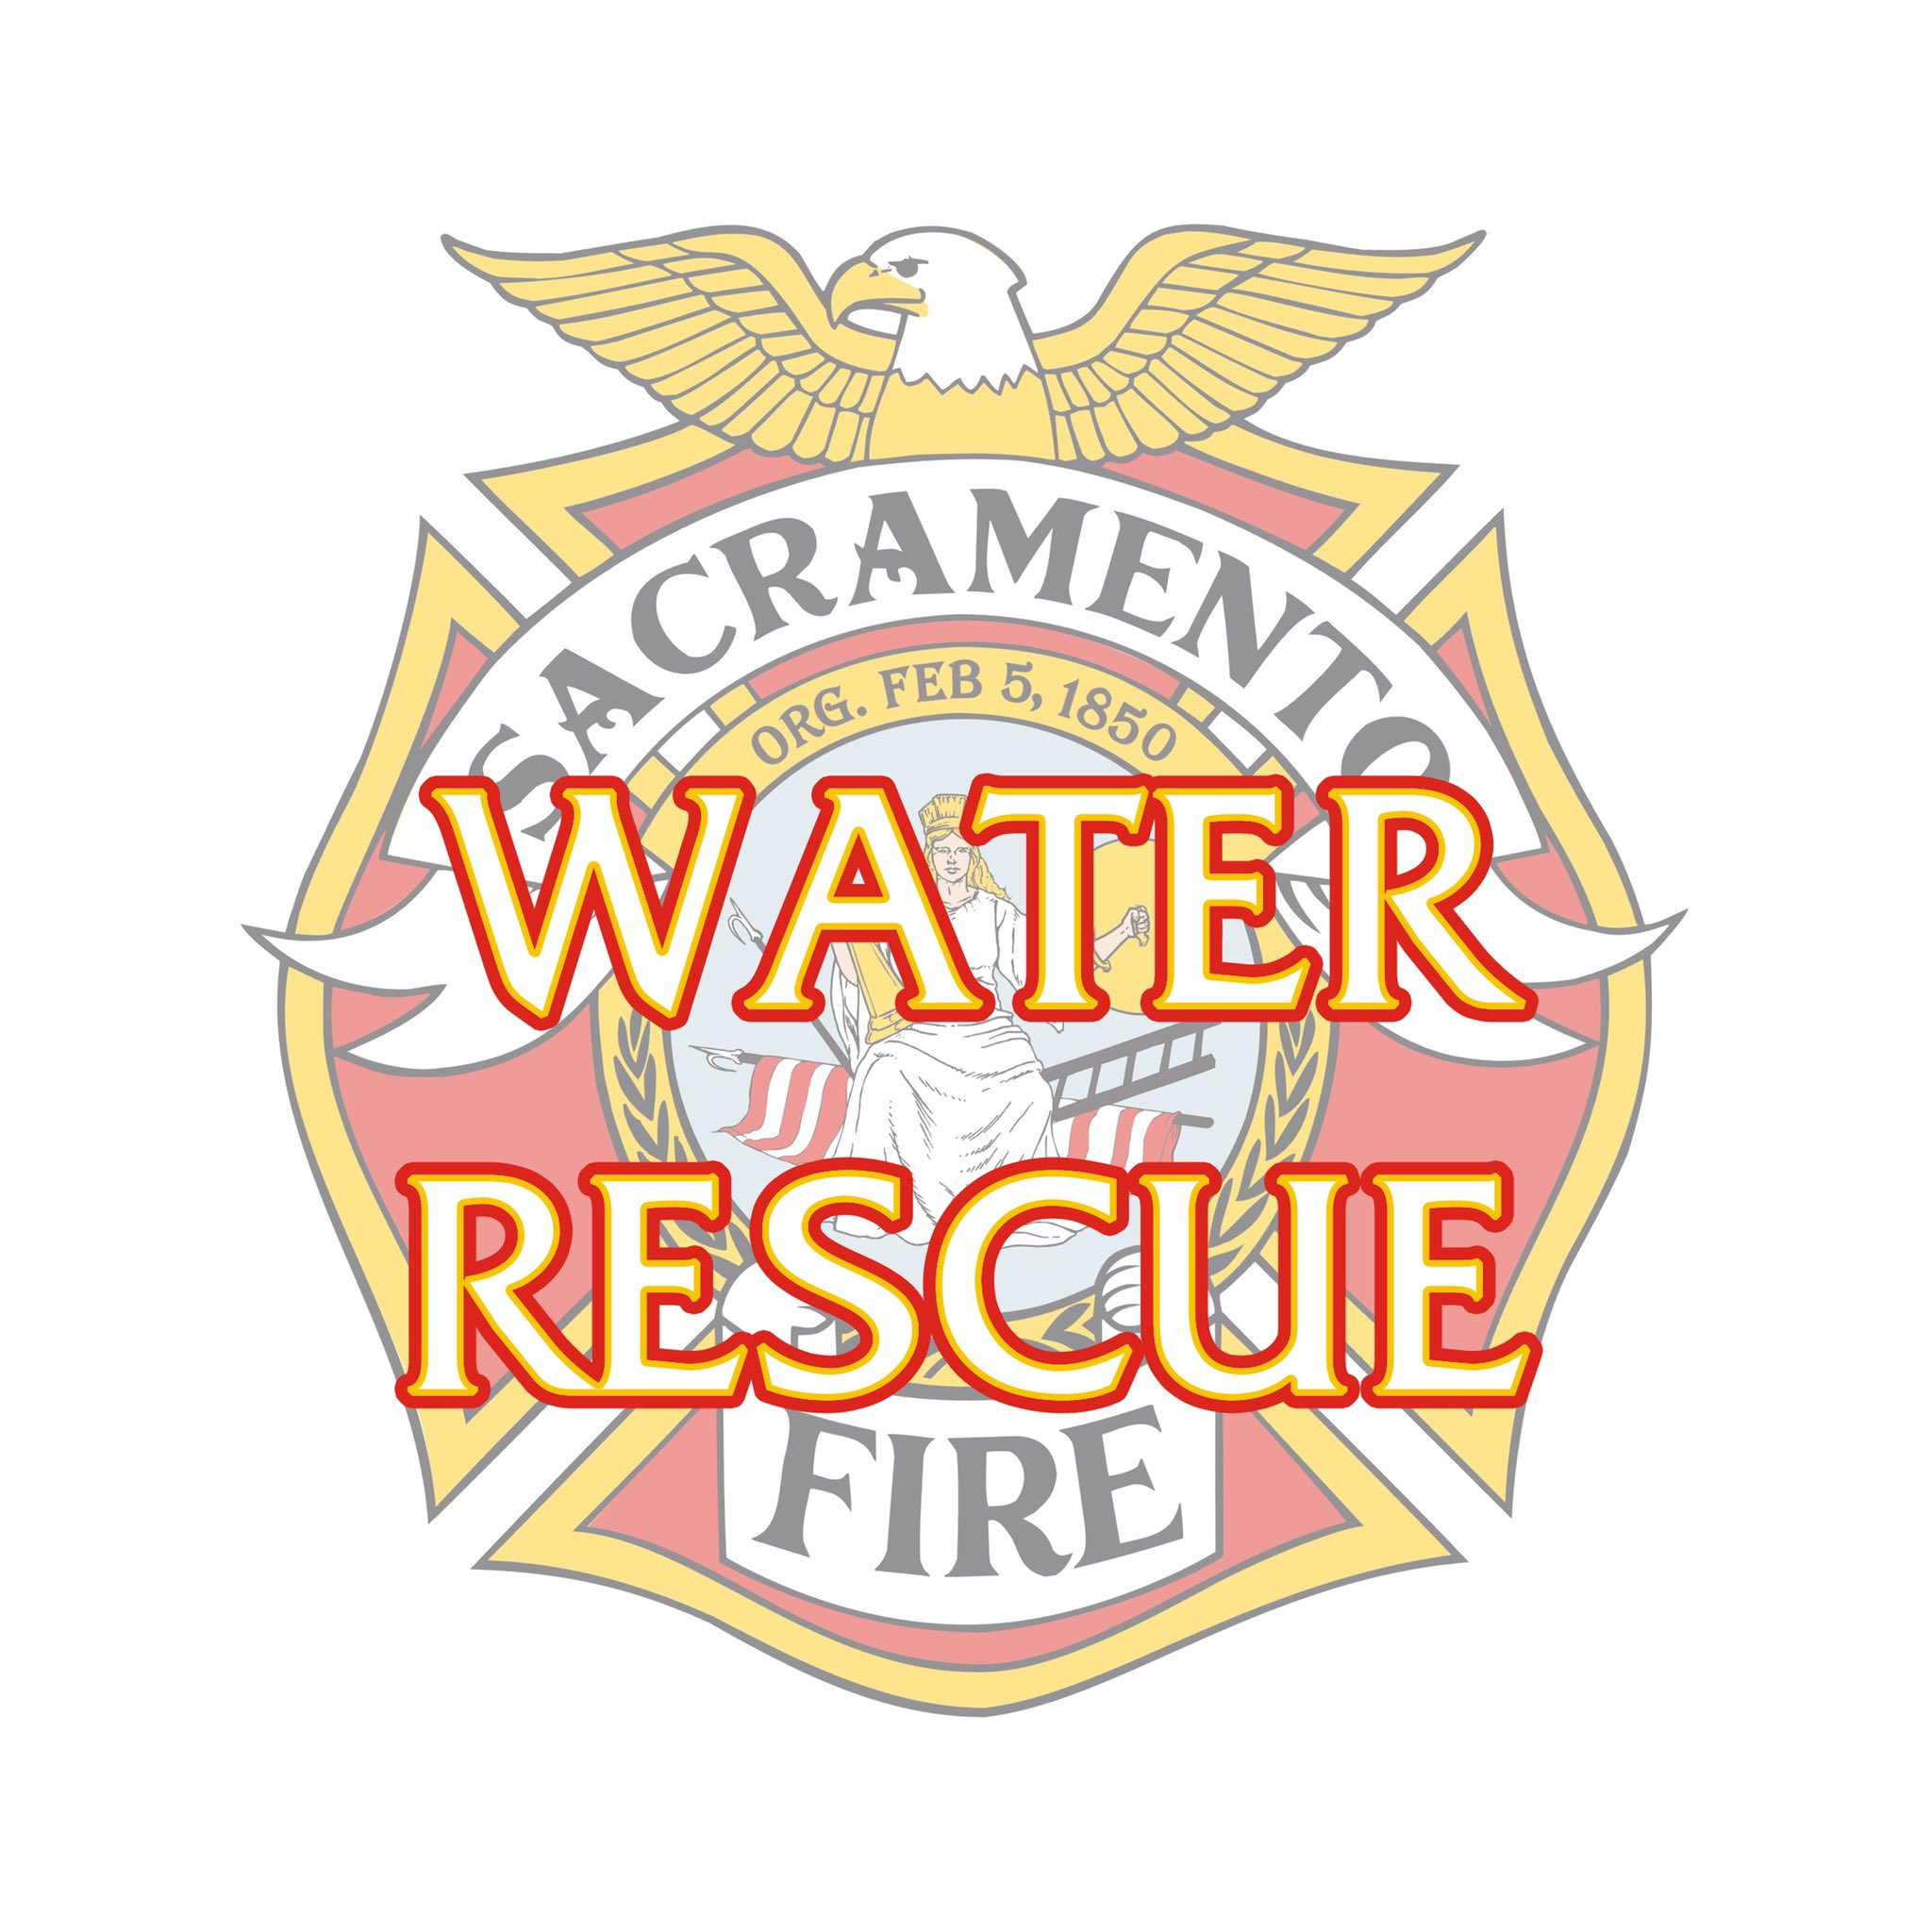 Thumbnail for Sac Fire, police searching for missing 3-year-old near Land Park